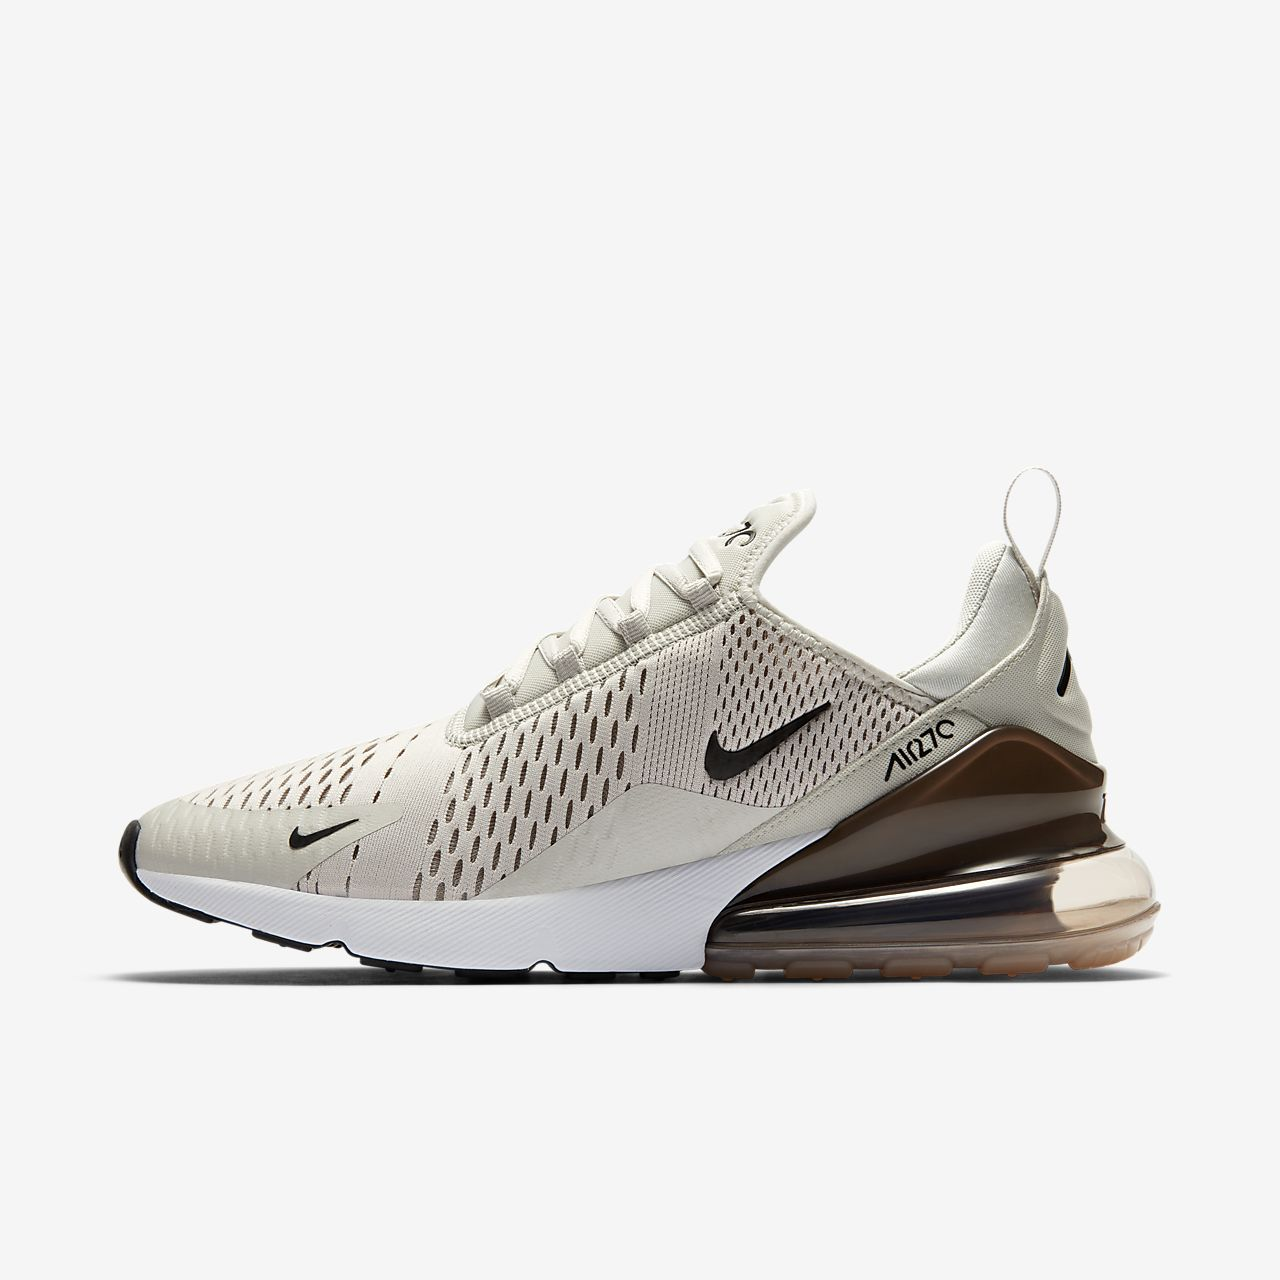 Gris Nike Air Max 270 Chaussures Taille 35 Hommes soJdV95HM